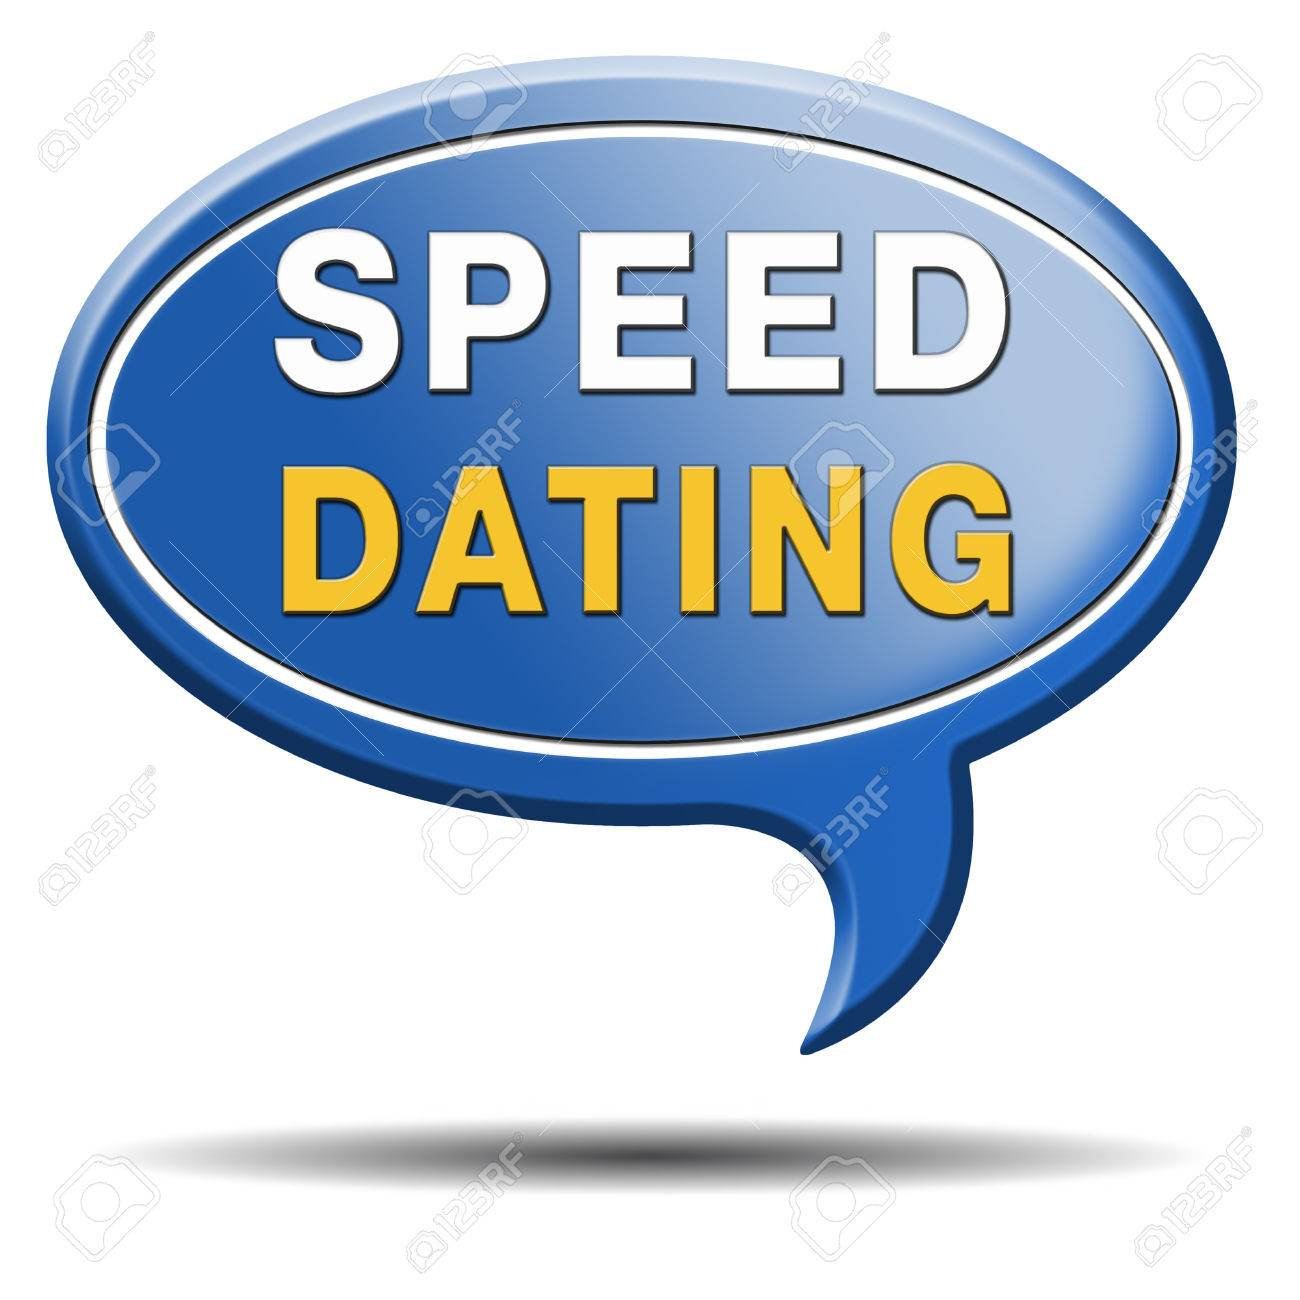 Toronto dating online per i professionisti